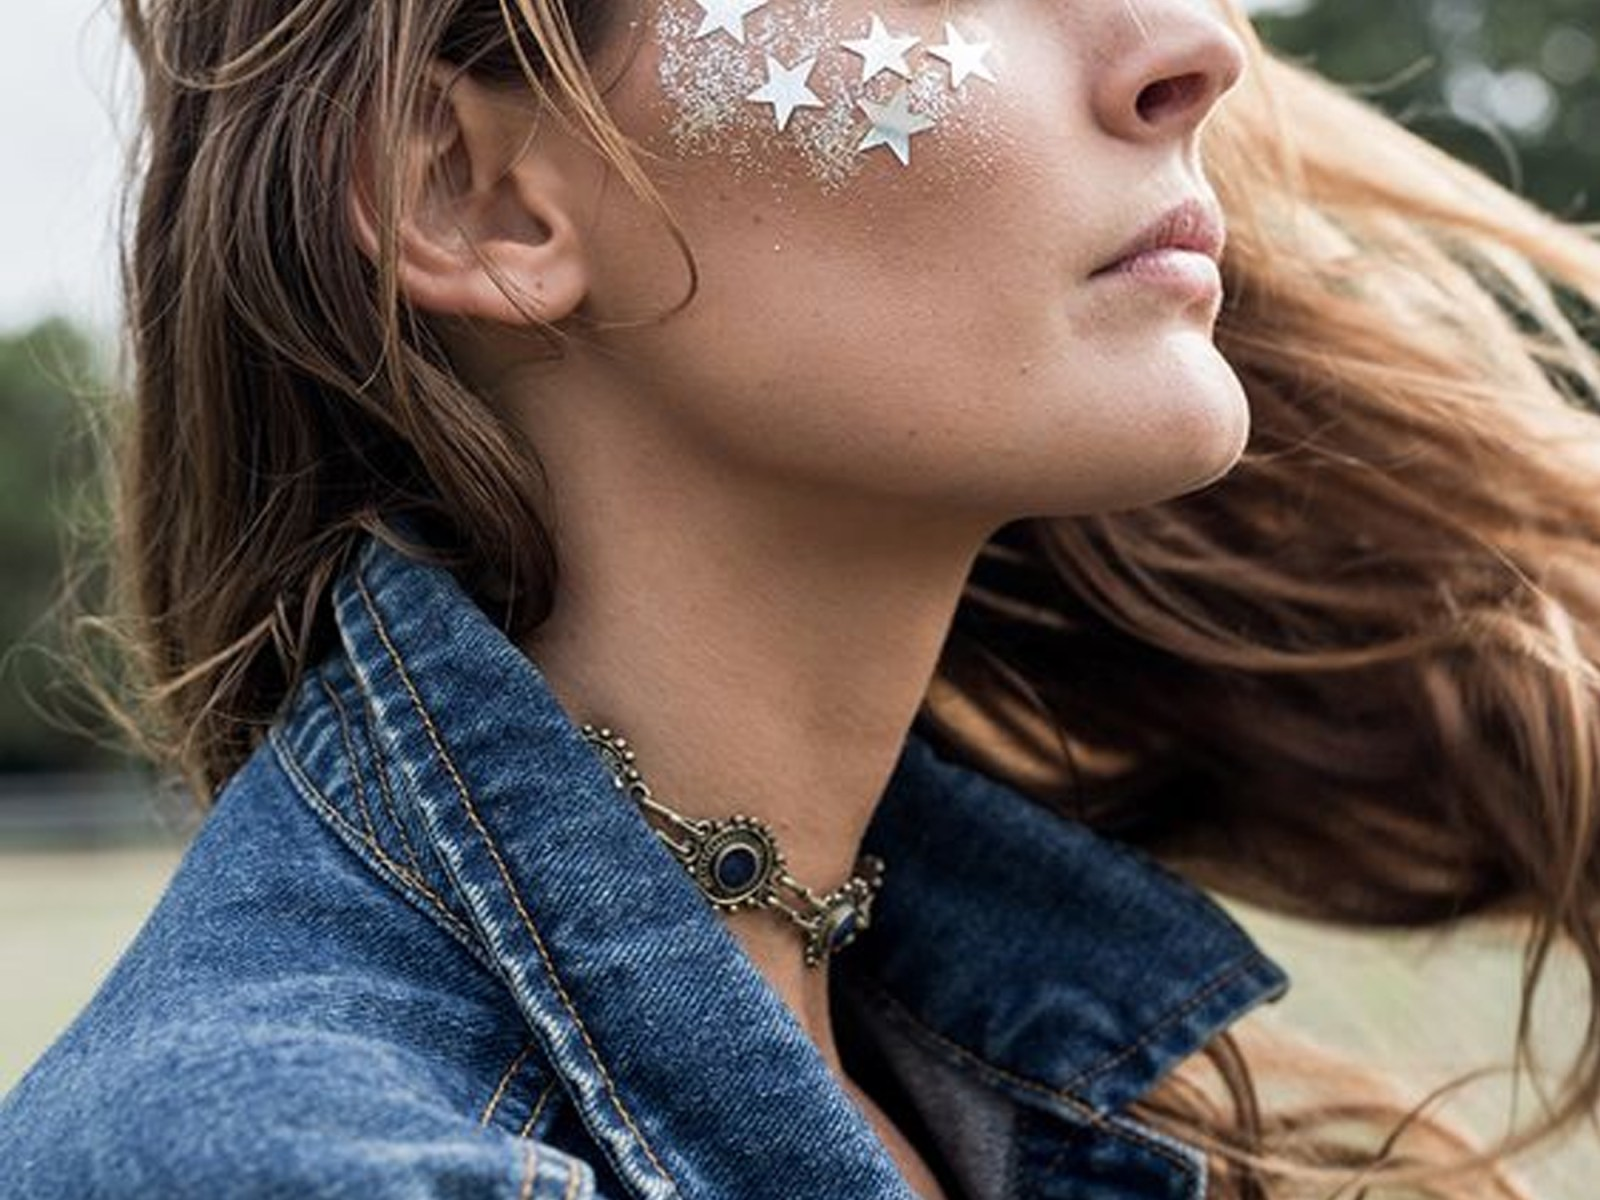 There is so much glitter art out there, however, around festival season is the time to really bust out the glitter. These are our favorite face glitter looks that will really make you sparkle.